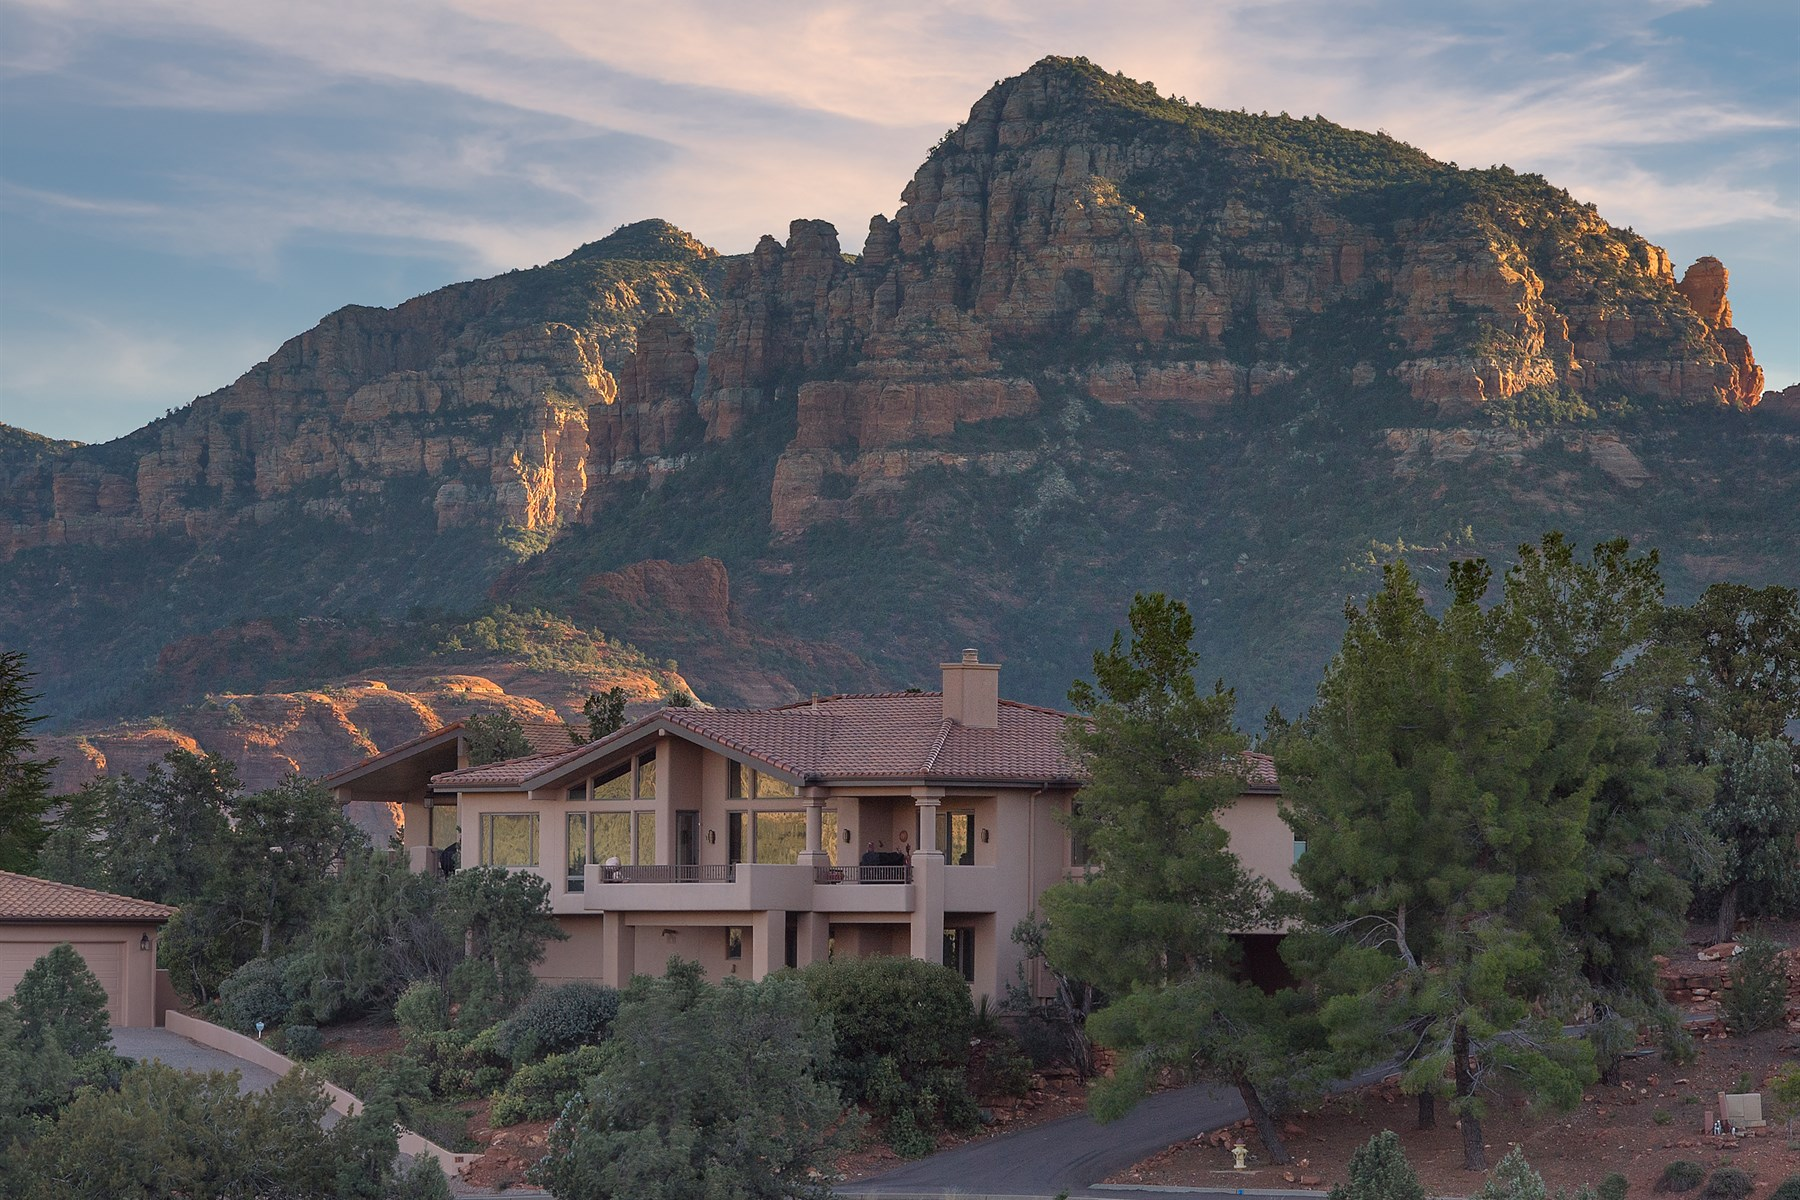 一戸建て のために 売買 アット Gated Sedona neighborhood with spectacular panoramic views 192 Les Springs Lane Sedona, アリゾナ 86336 アメリカ合衆国